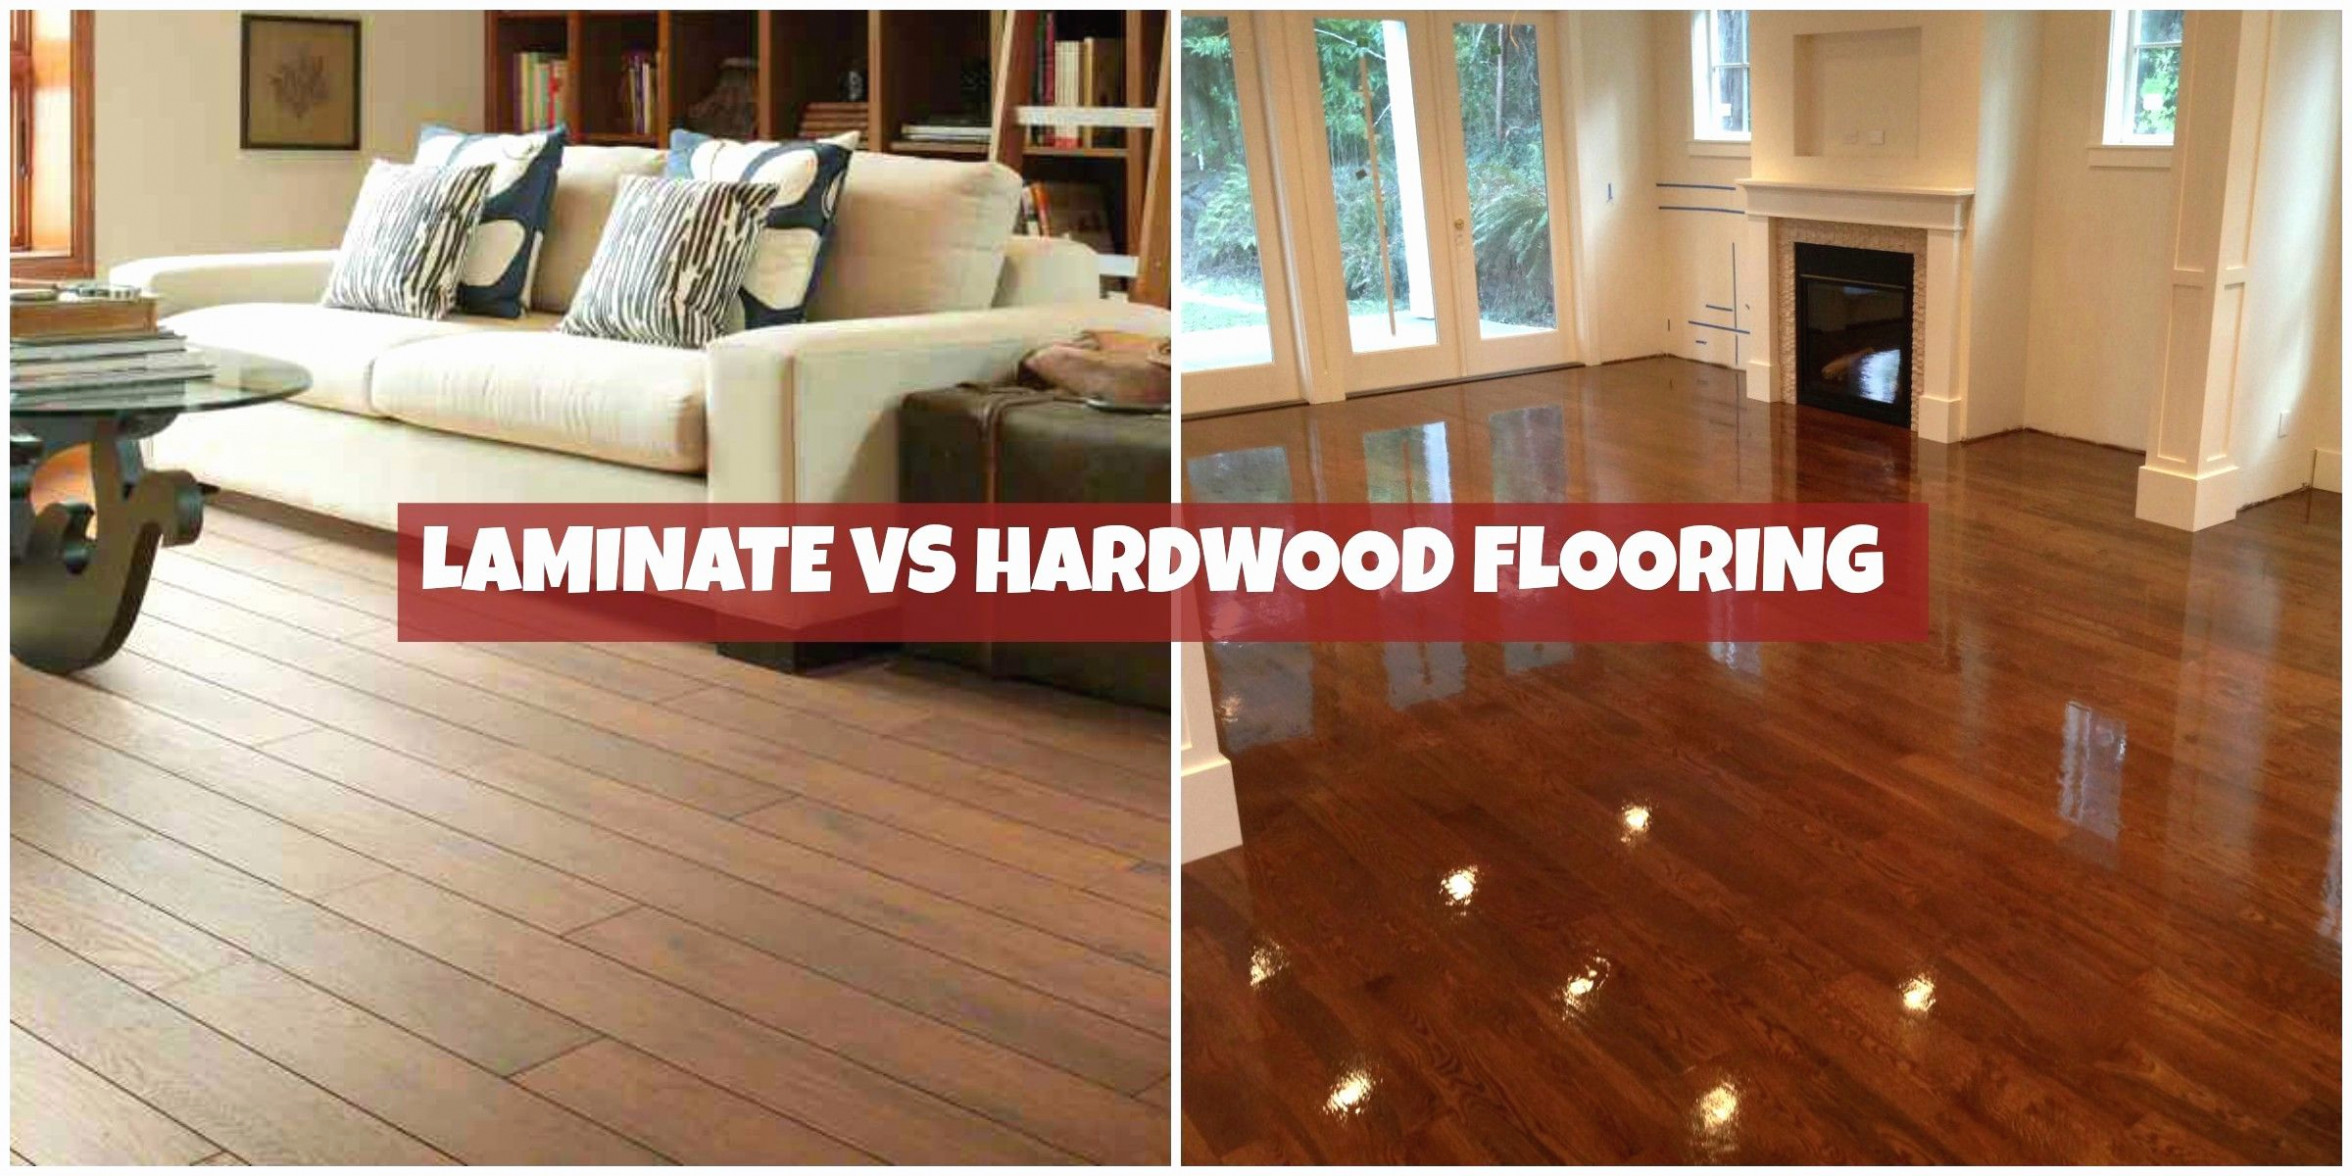 Laminate Flooring Vs Engineered Hardwood Cost Of Ceramic Tile Vs Hardwood Flooring Flooring Ideas for 50 Fresh Ceramic Tile Vs Hardwood Flooring Cost Graphics S Pertaining to Wood Laminate